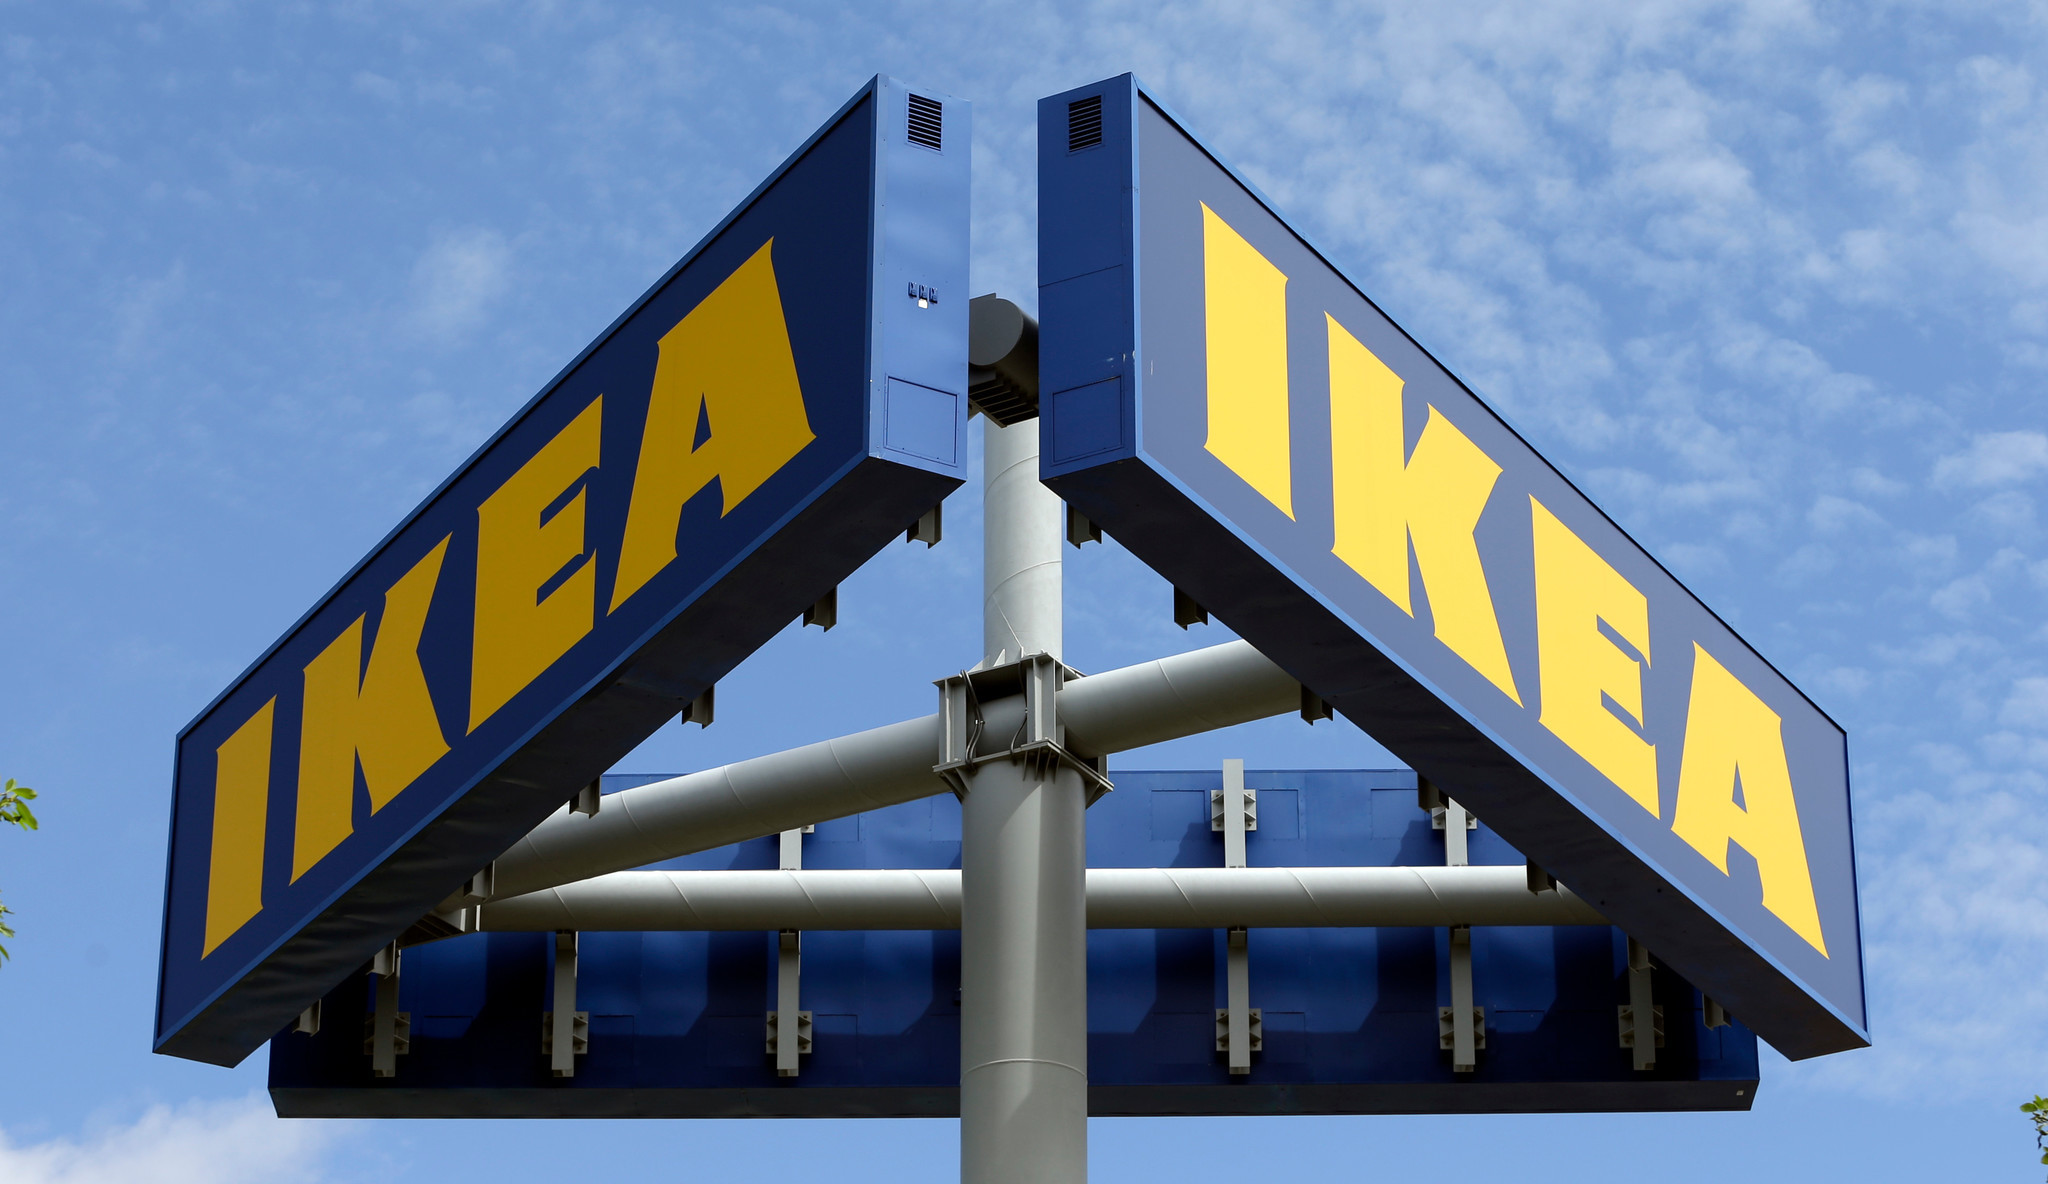 Ikea pays $46 million to bereaved family over 2017 death of toddler from tipped-over dresser